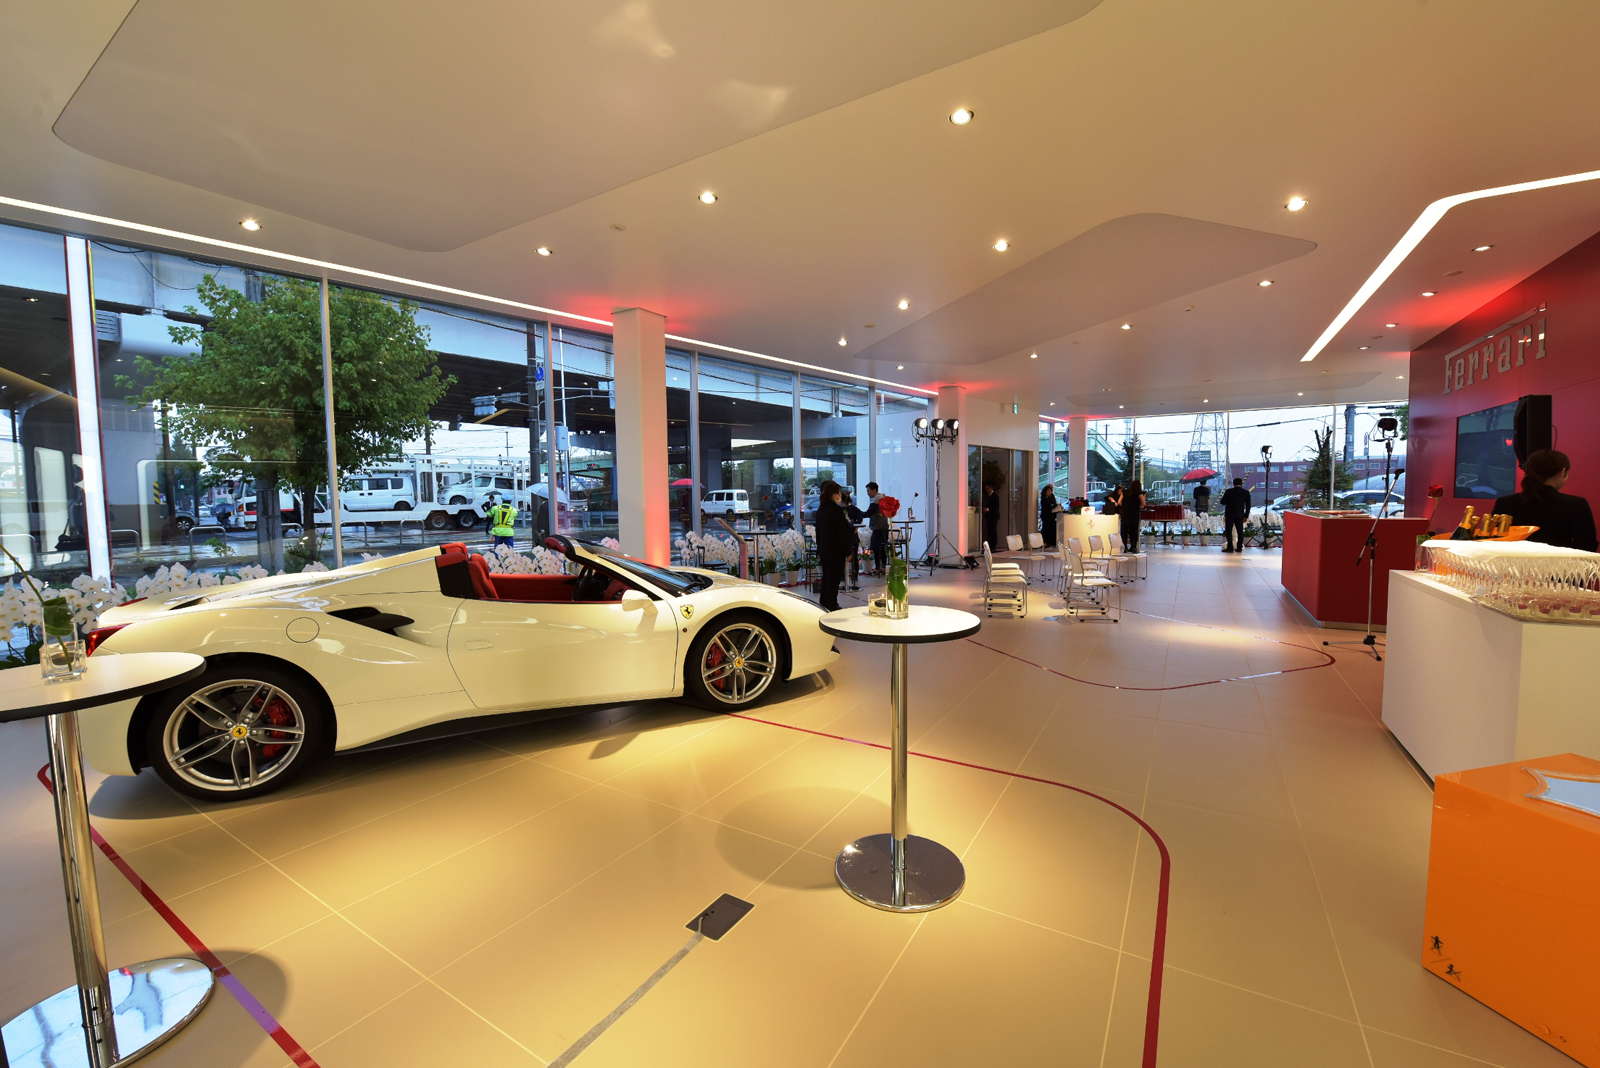 Ferrari Doubles Down On Japanese Market With Two New ...